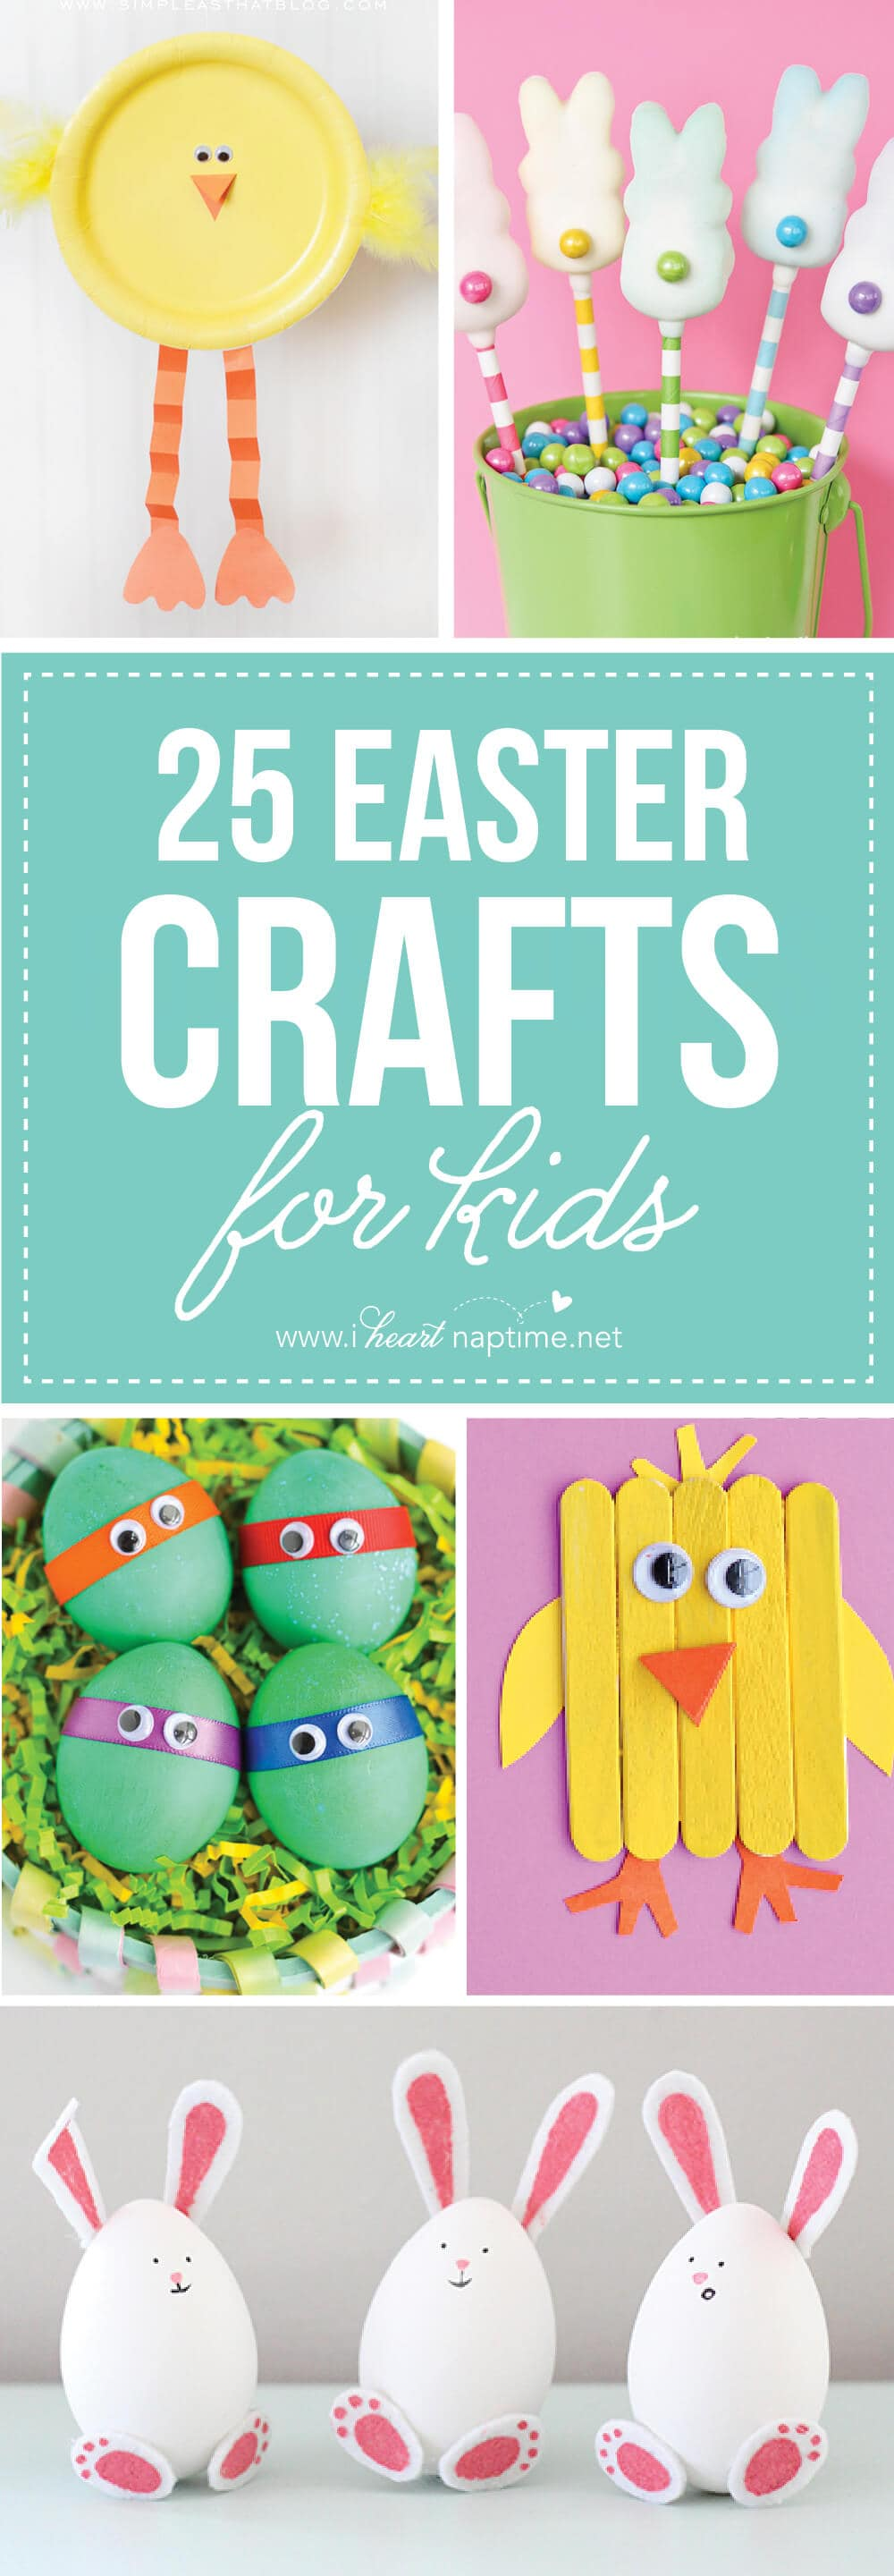 25 Easter Crafts for Kids – Fun-filled Easter activities for you and your child to do together!